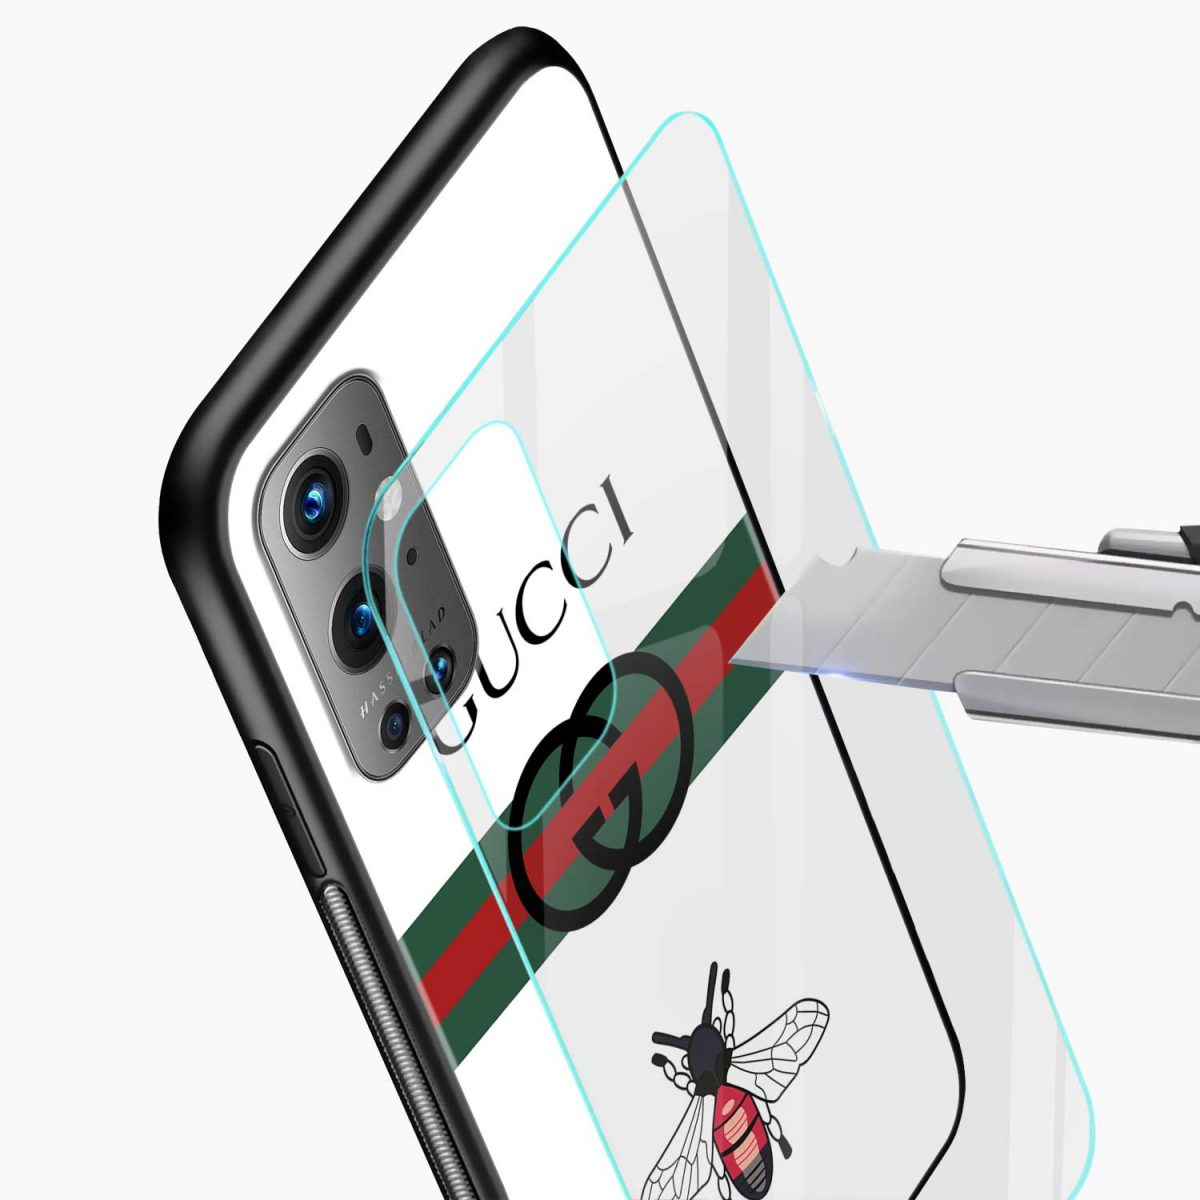 white gucci strips glass view oneplus 9 pro back cover